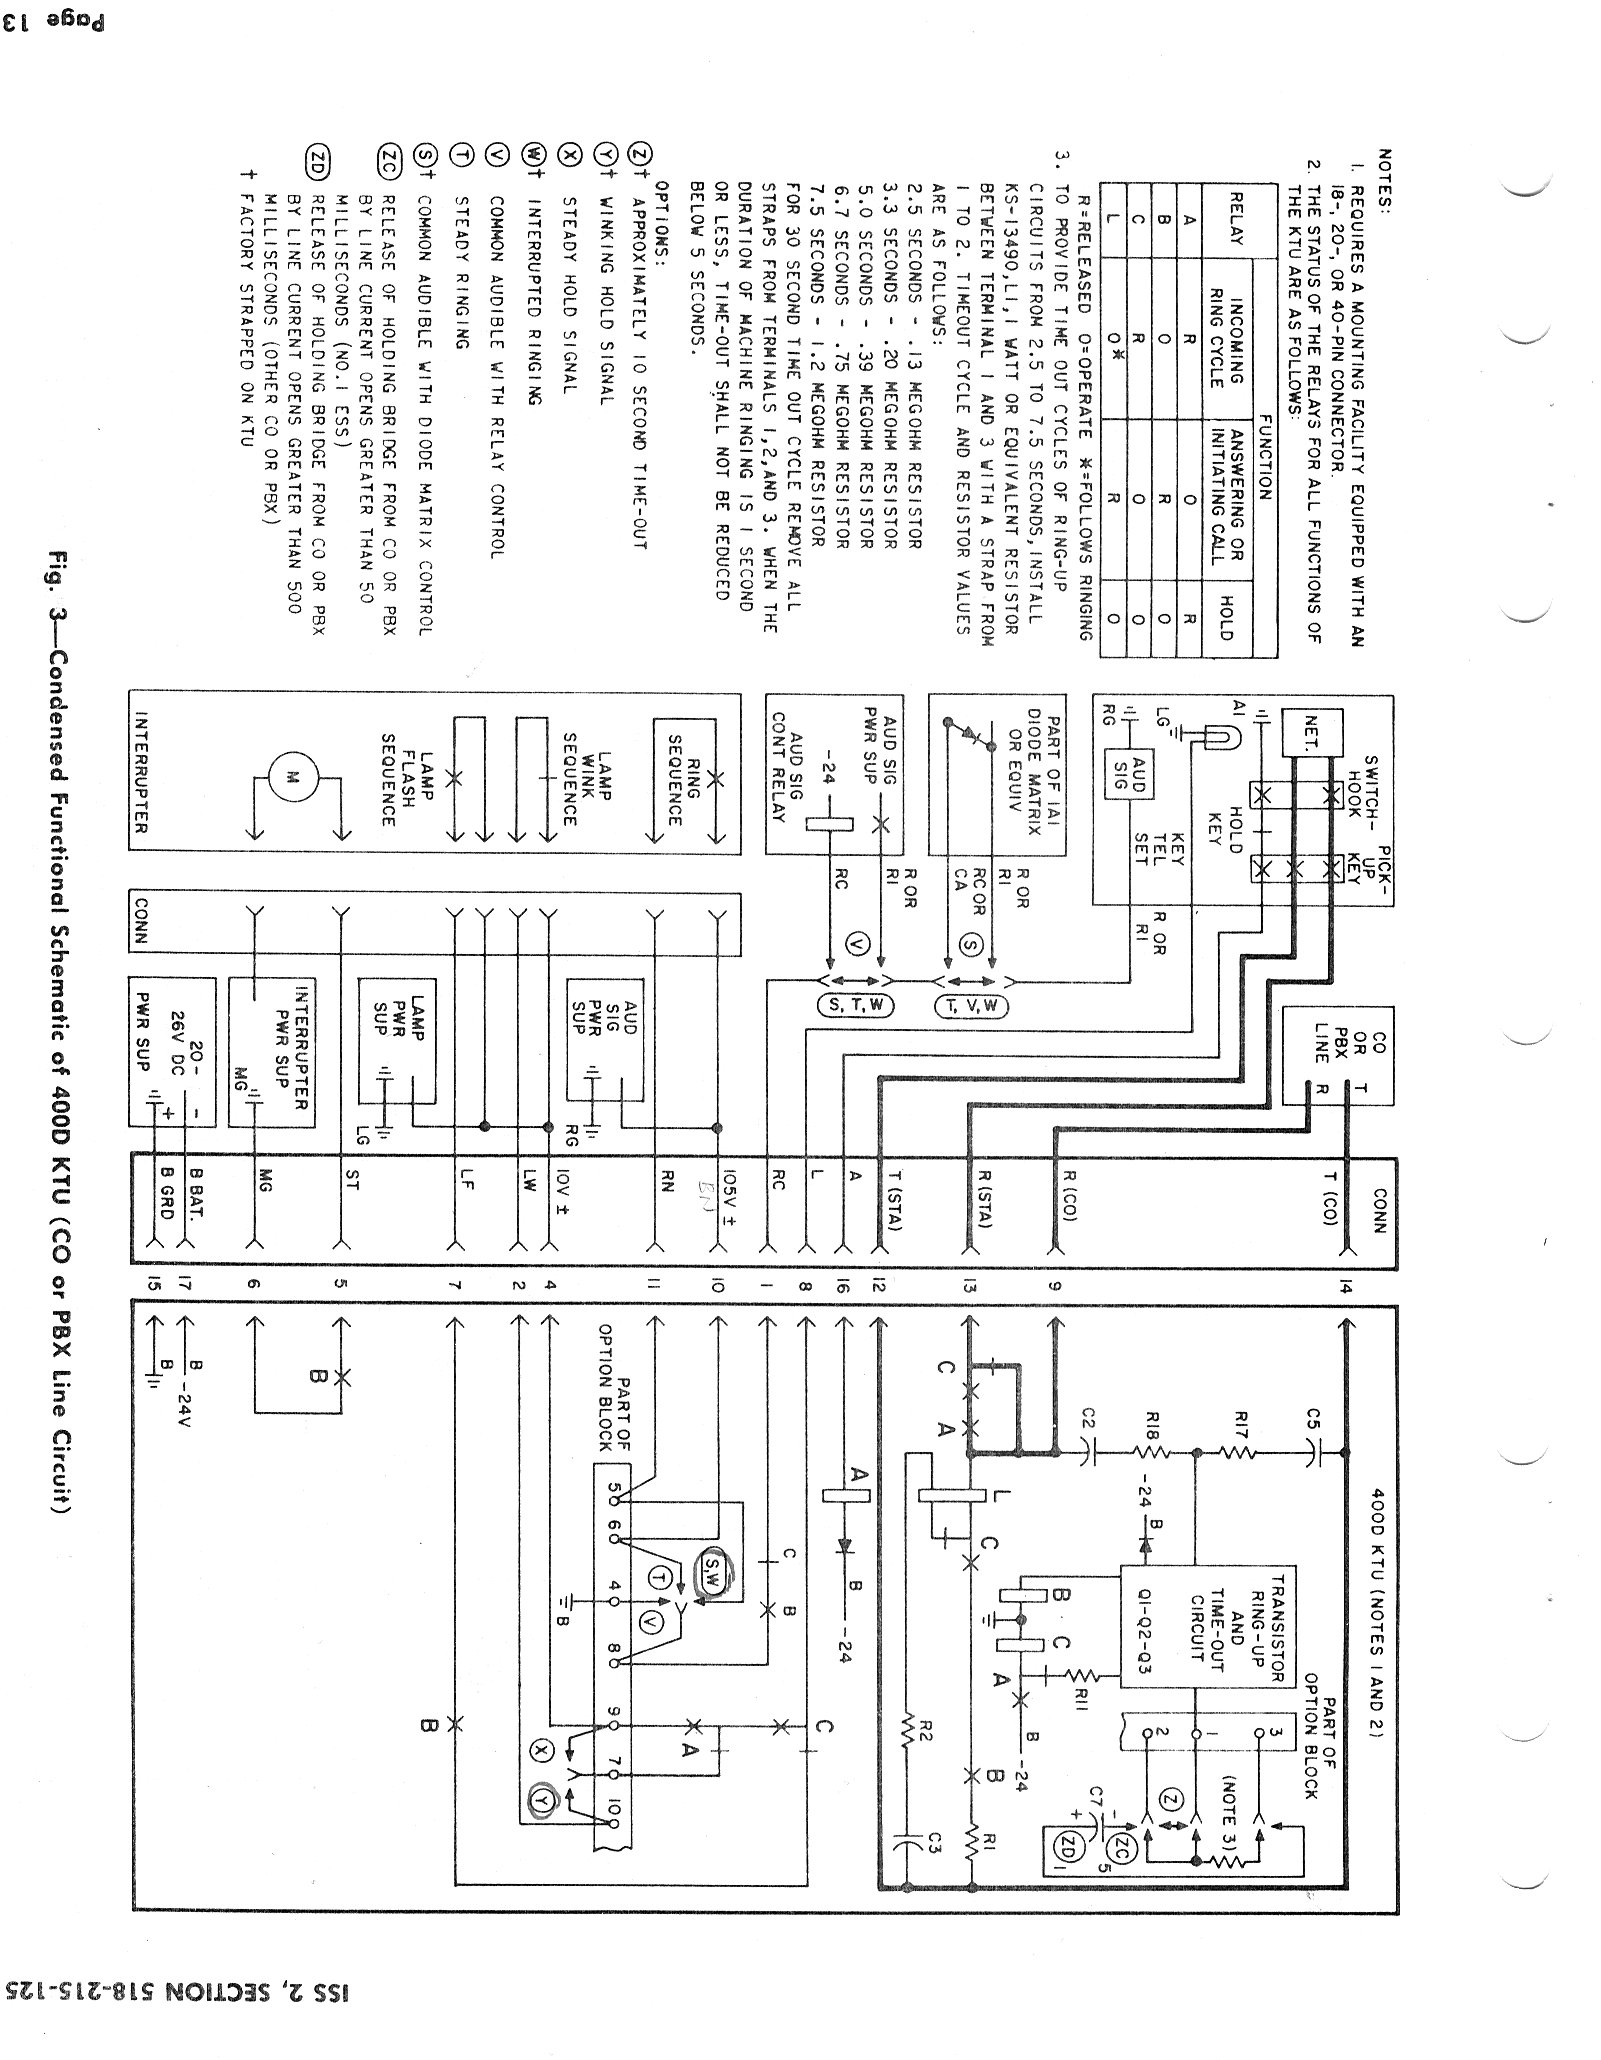 400d telephone technical references multi-line phone wiring diagram at soozxer.org